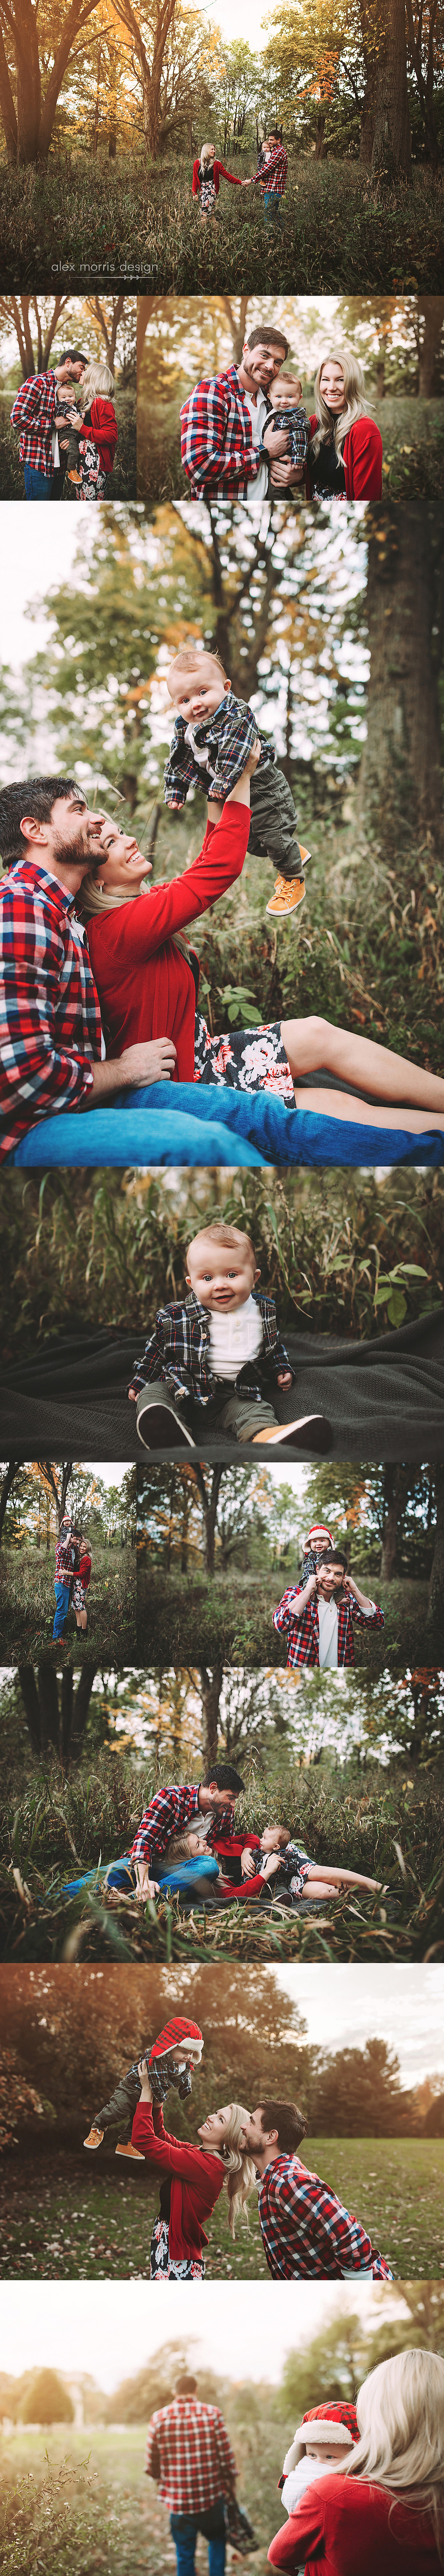 Indianapolis Family Photographer | Alex Morris Design | Brittani Drew Storen BLOG